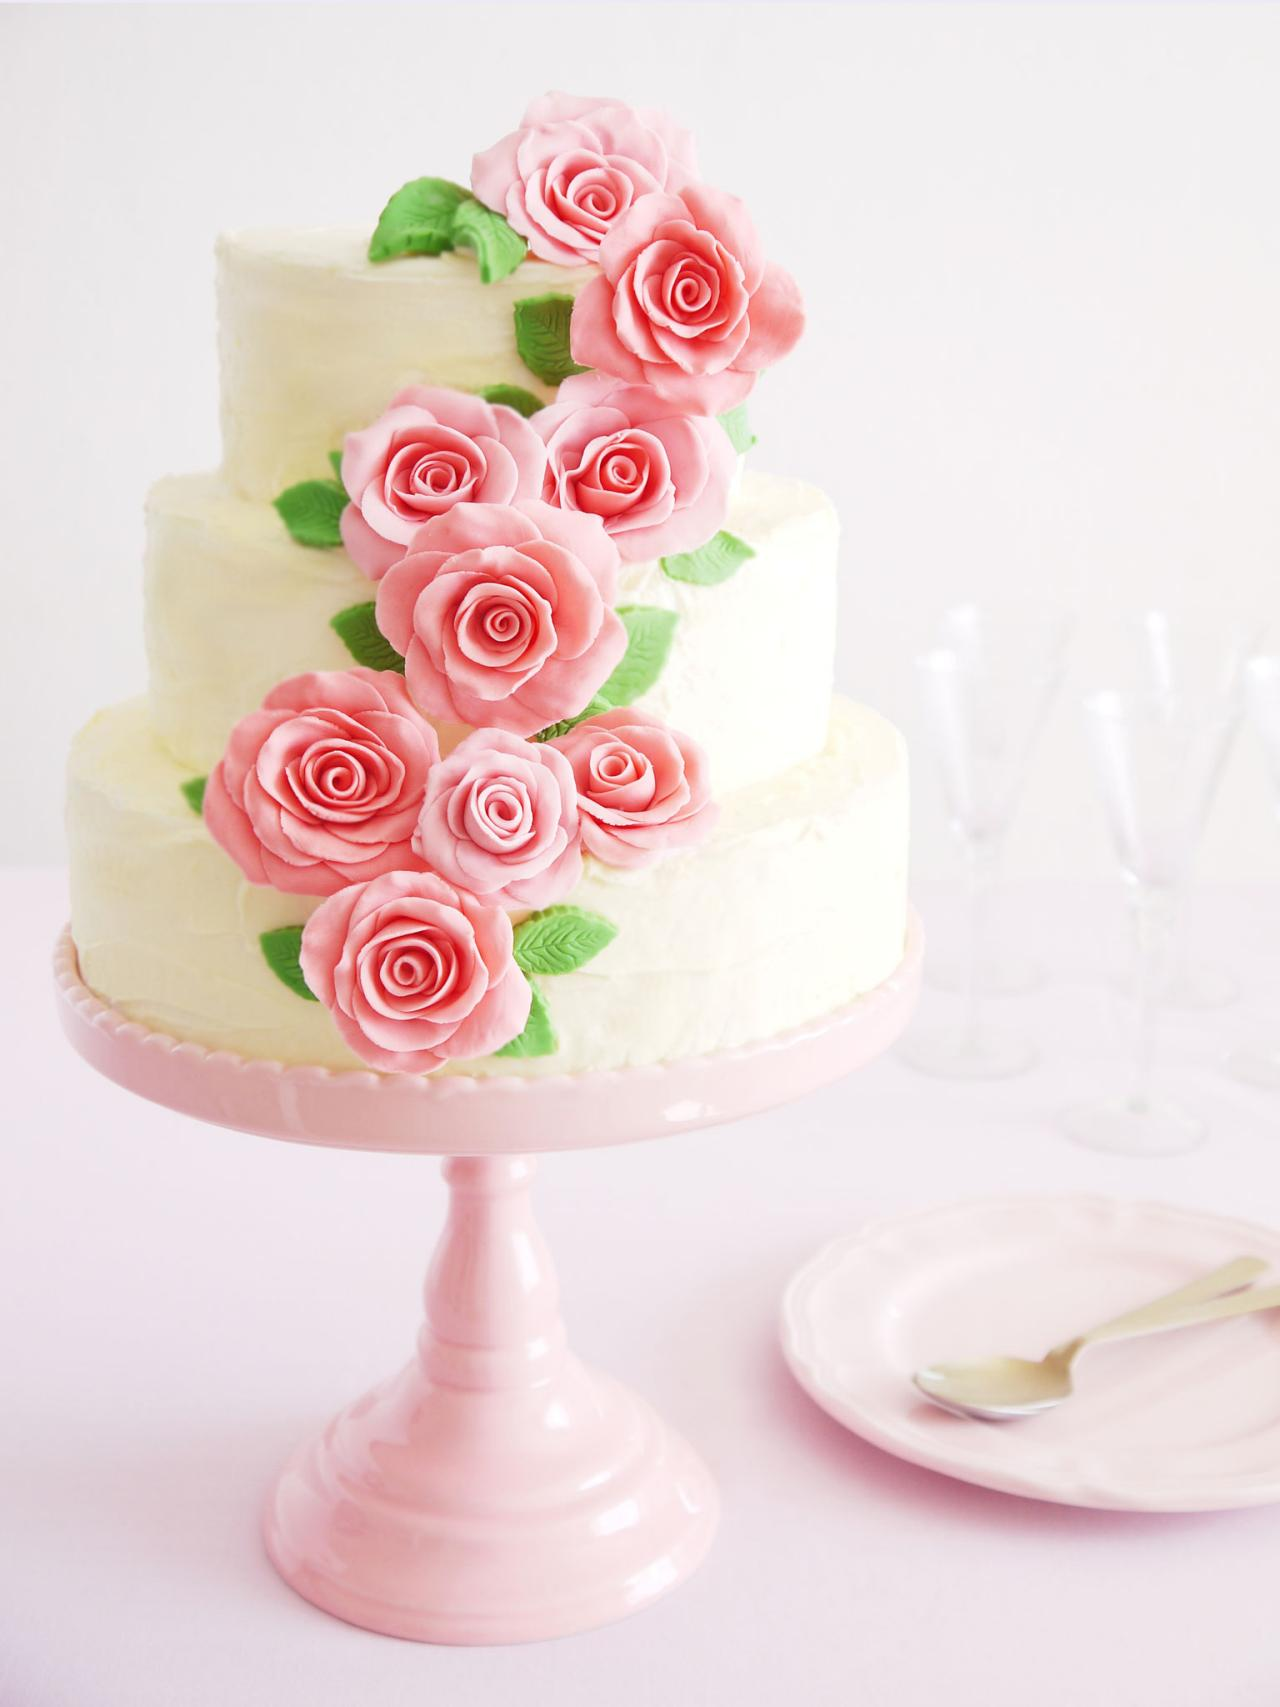 Design Your Own Wedding Cake Uk : Simple Wedding Cakes and Desserts Entertaining Ideas ...